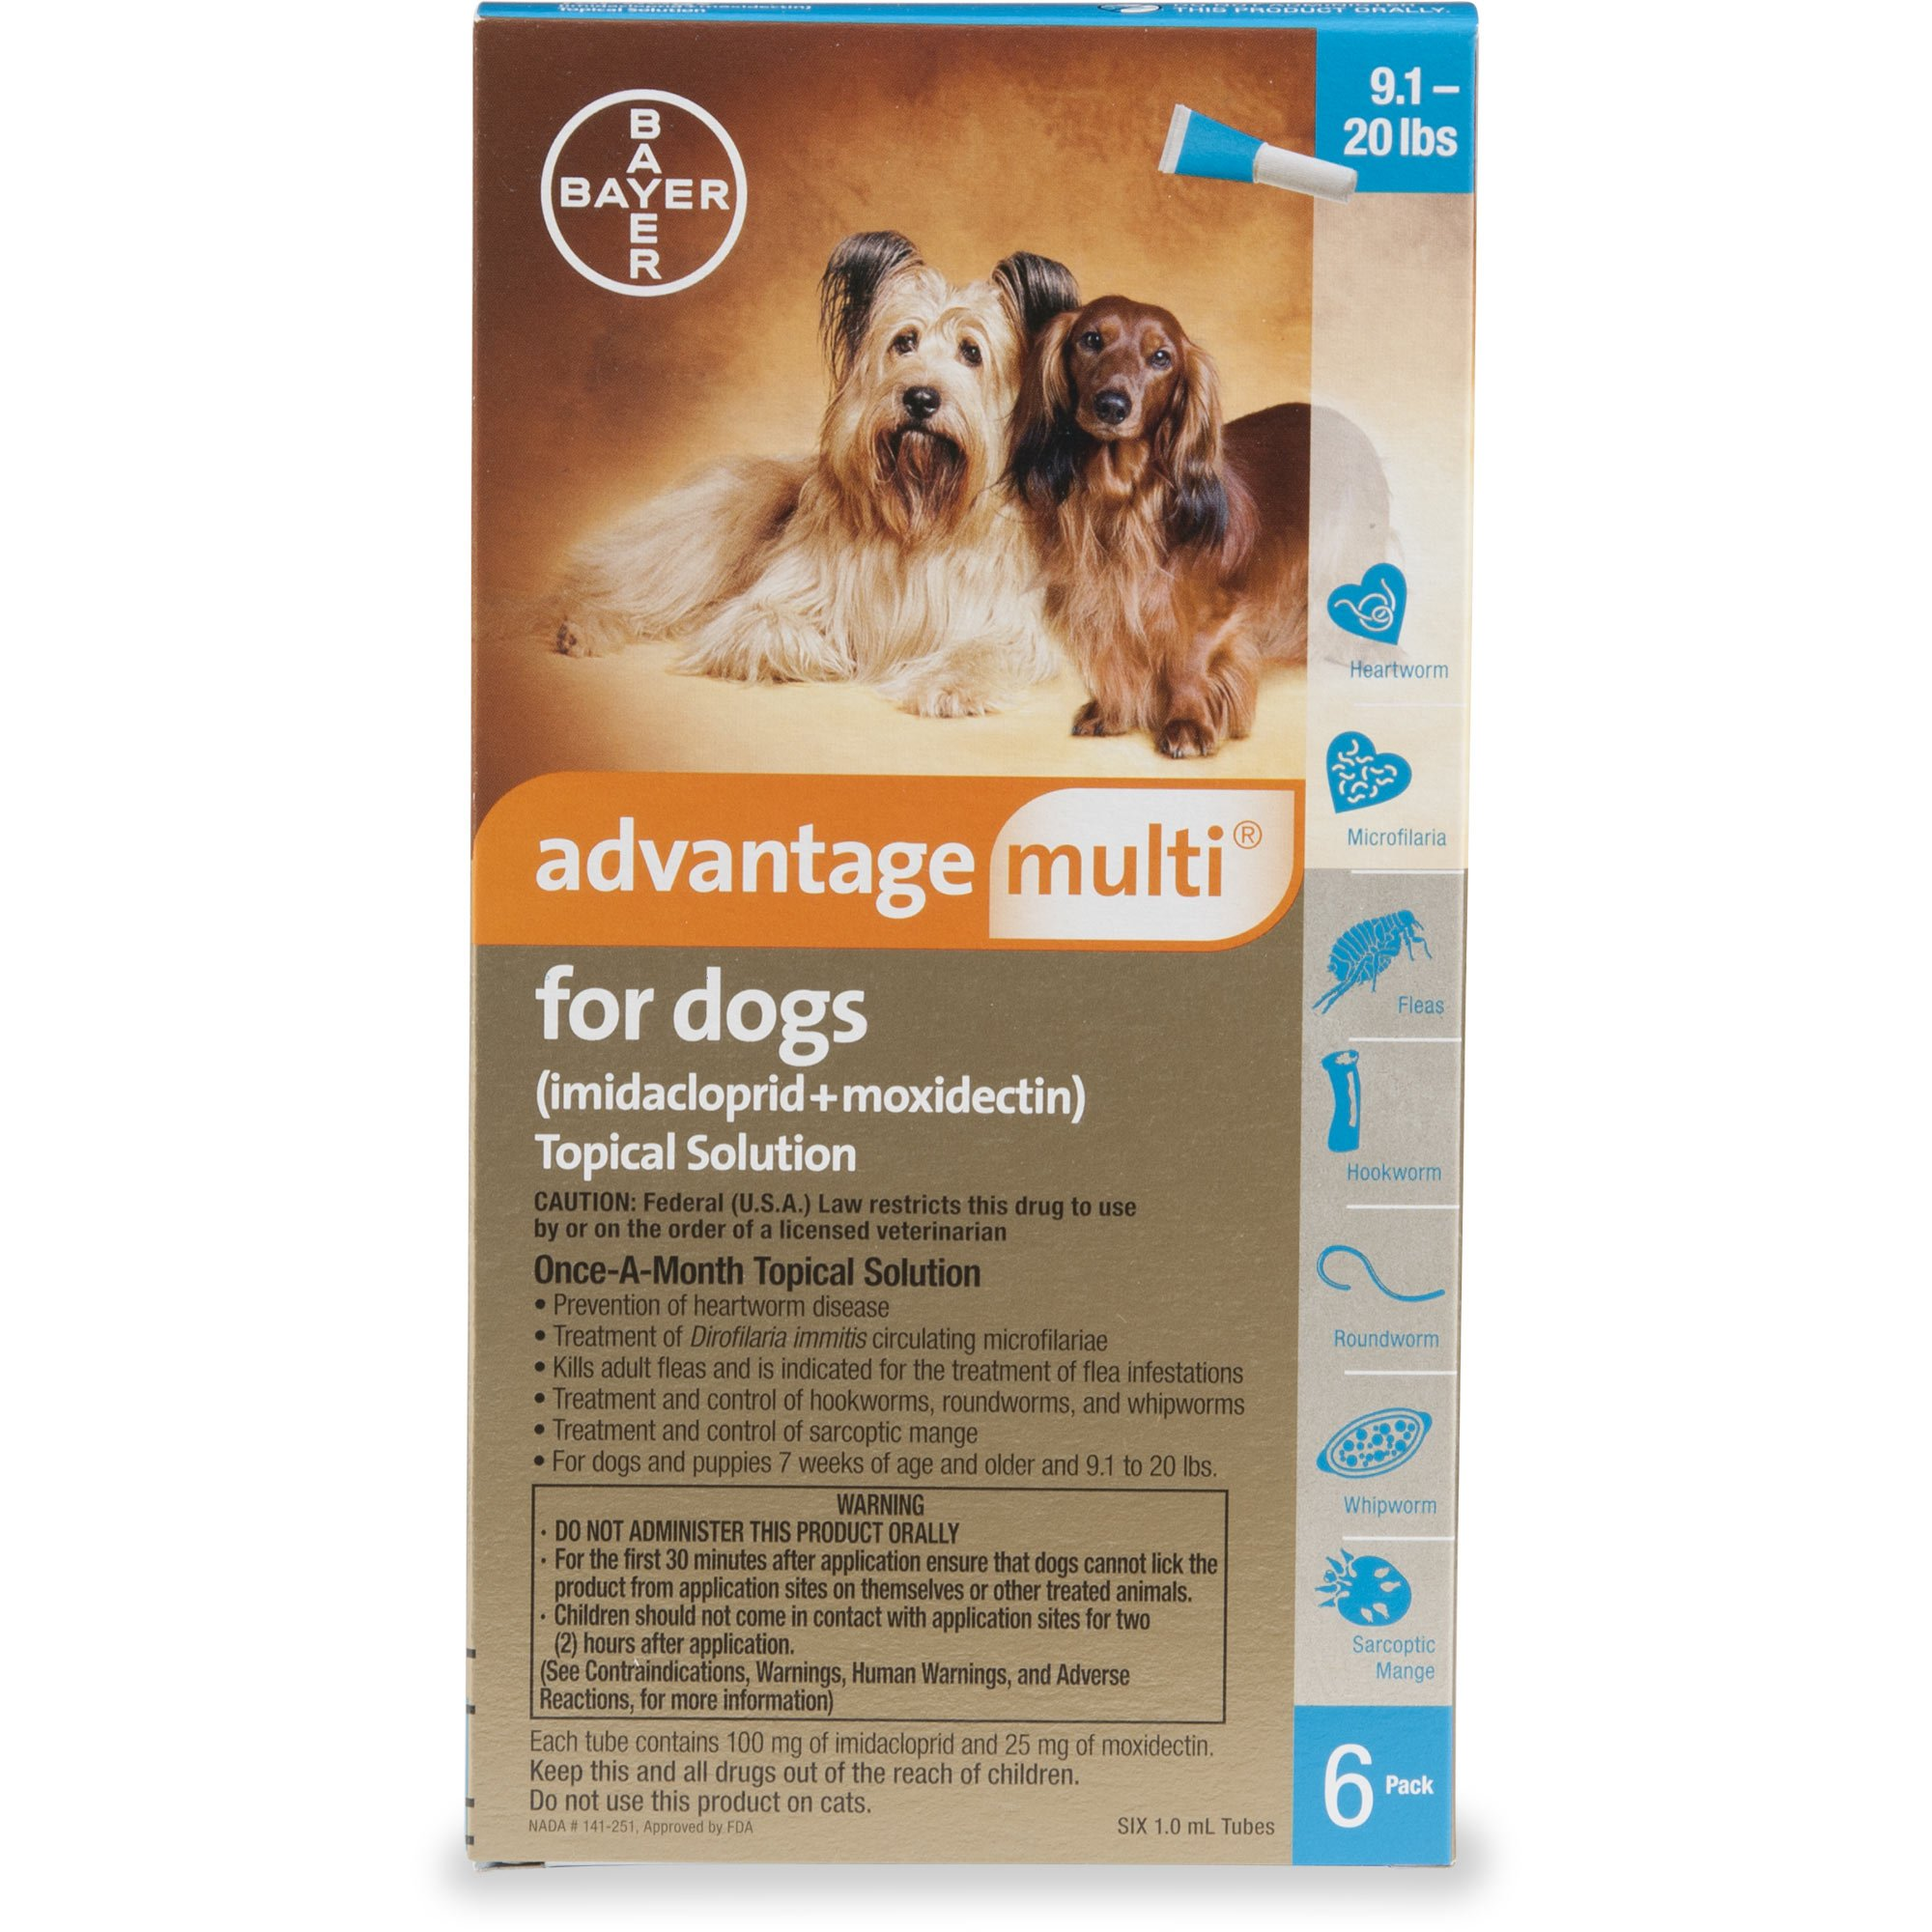 Advantage Multi Topical Solution for Dogs 9 1 to 20 lbs  | Petco